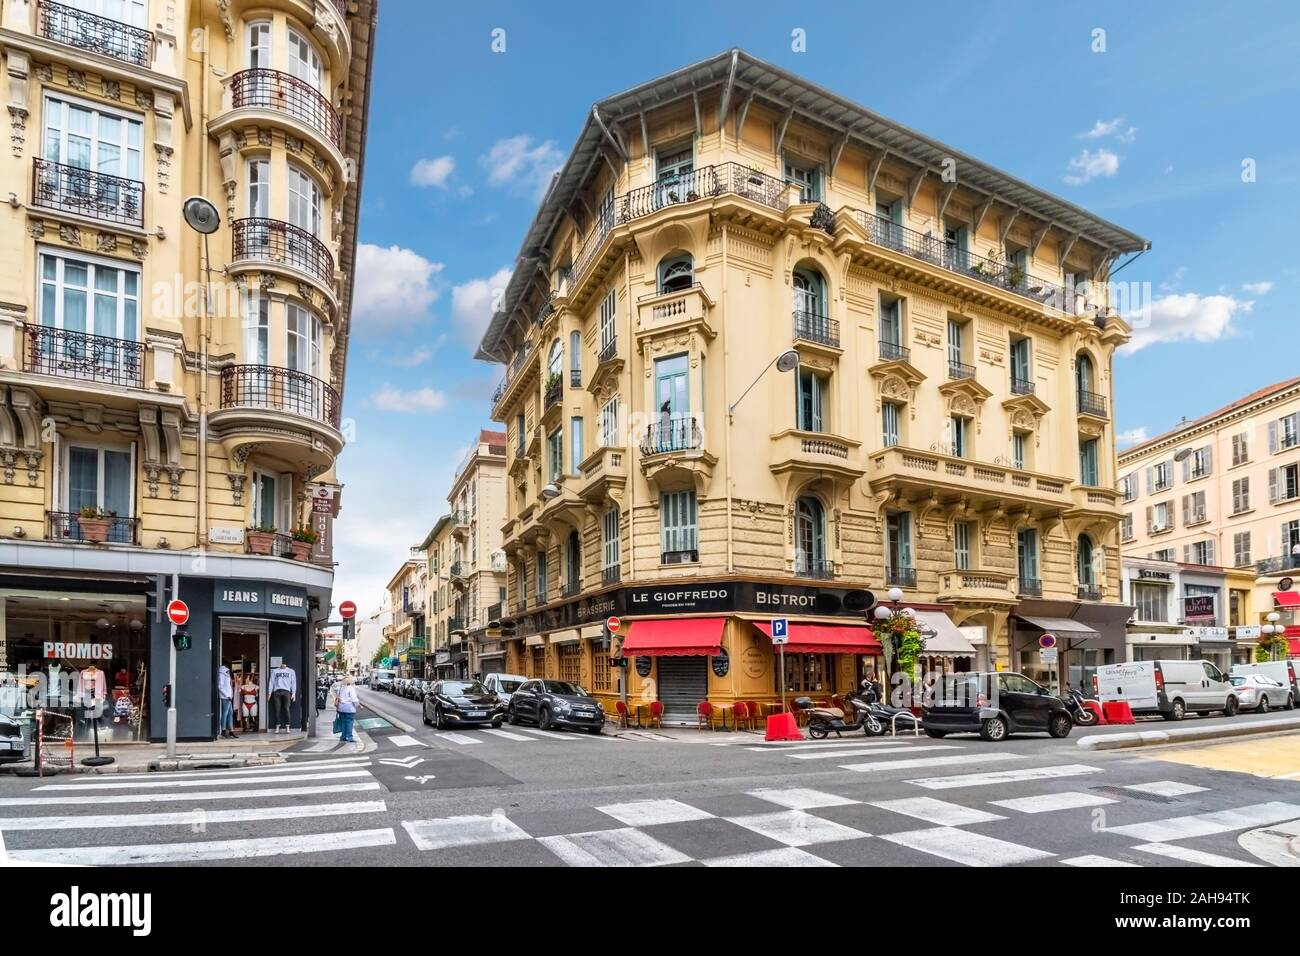 A French Bistro sits on a typical corner near the touristic city center of Nice, France, on the French Riviera. Stock Photo